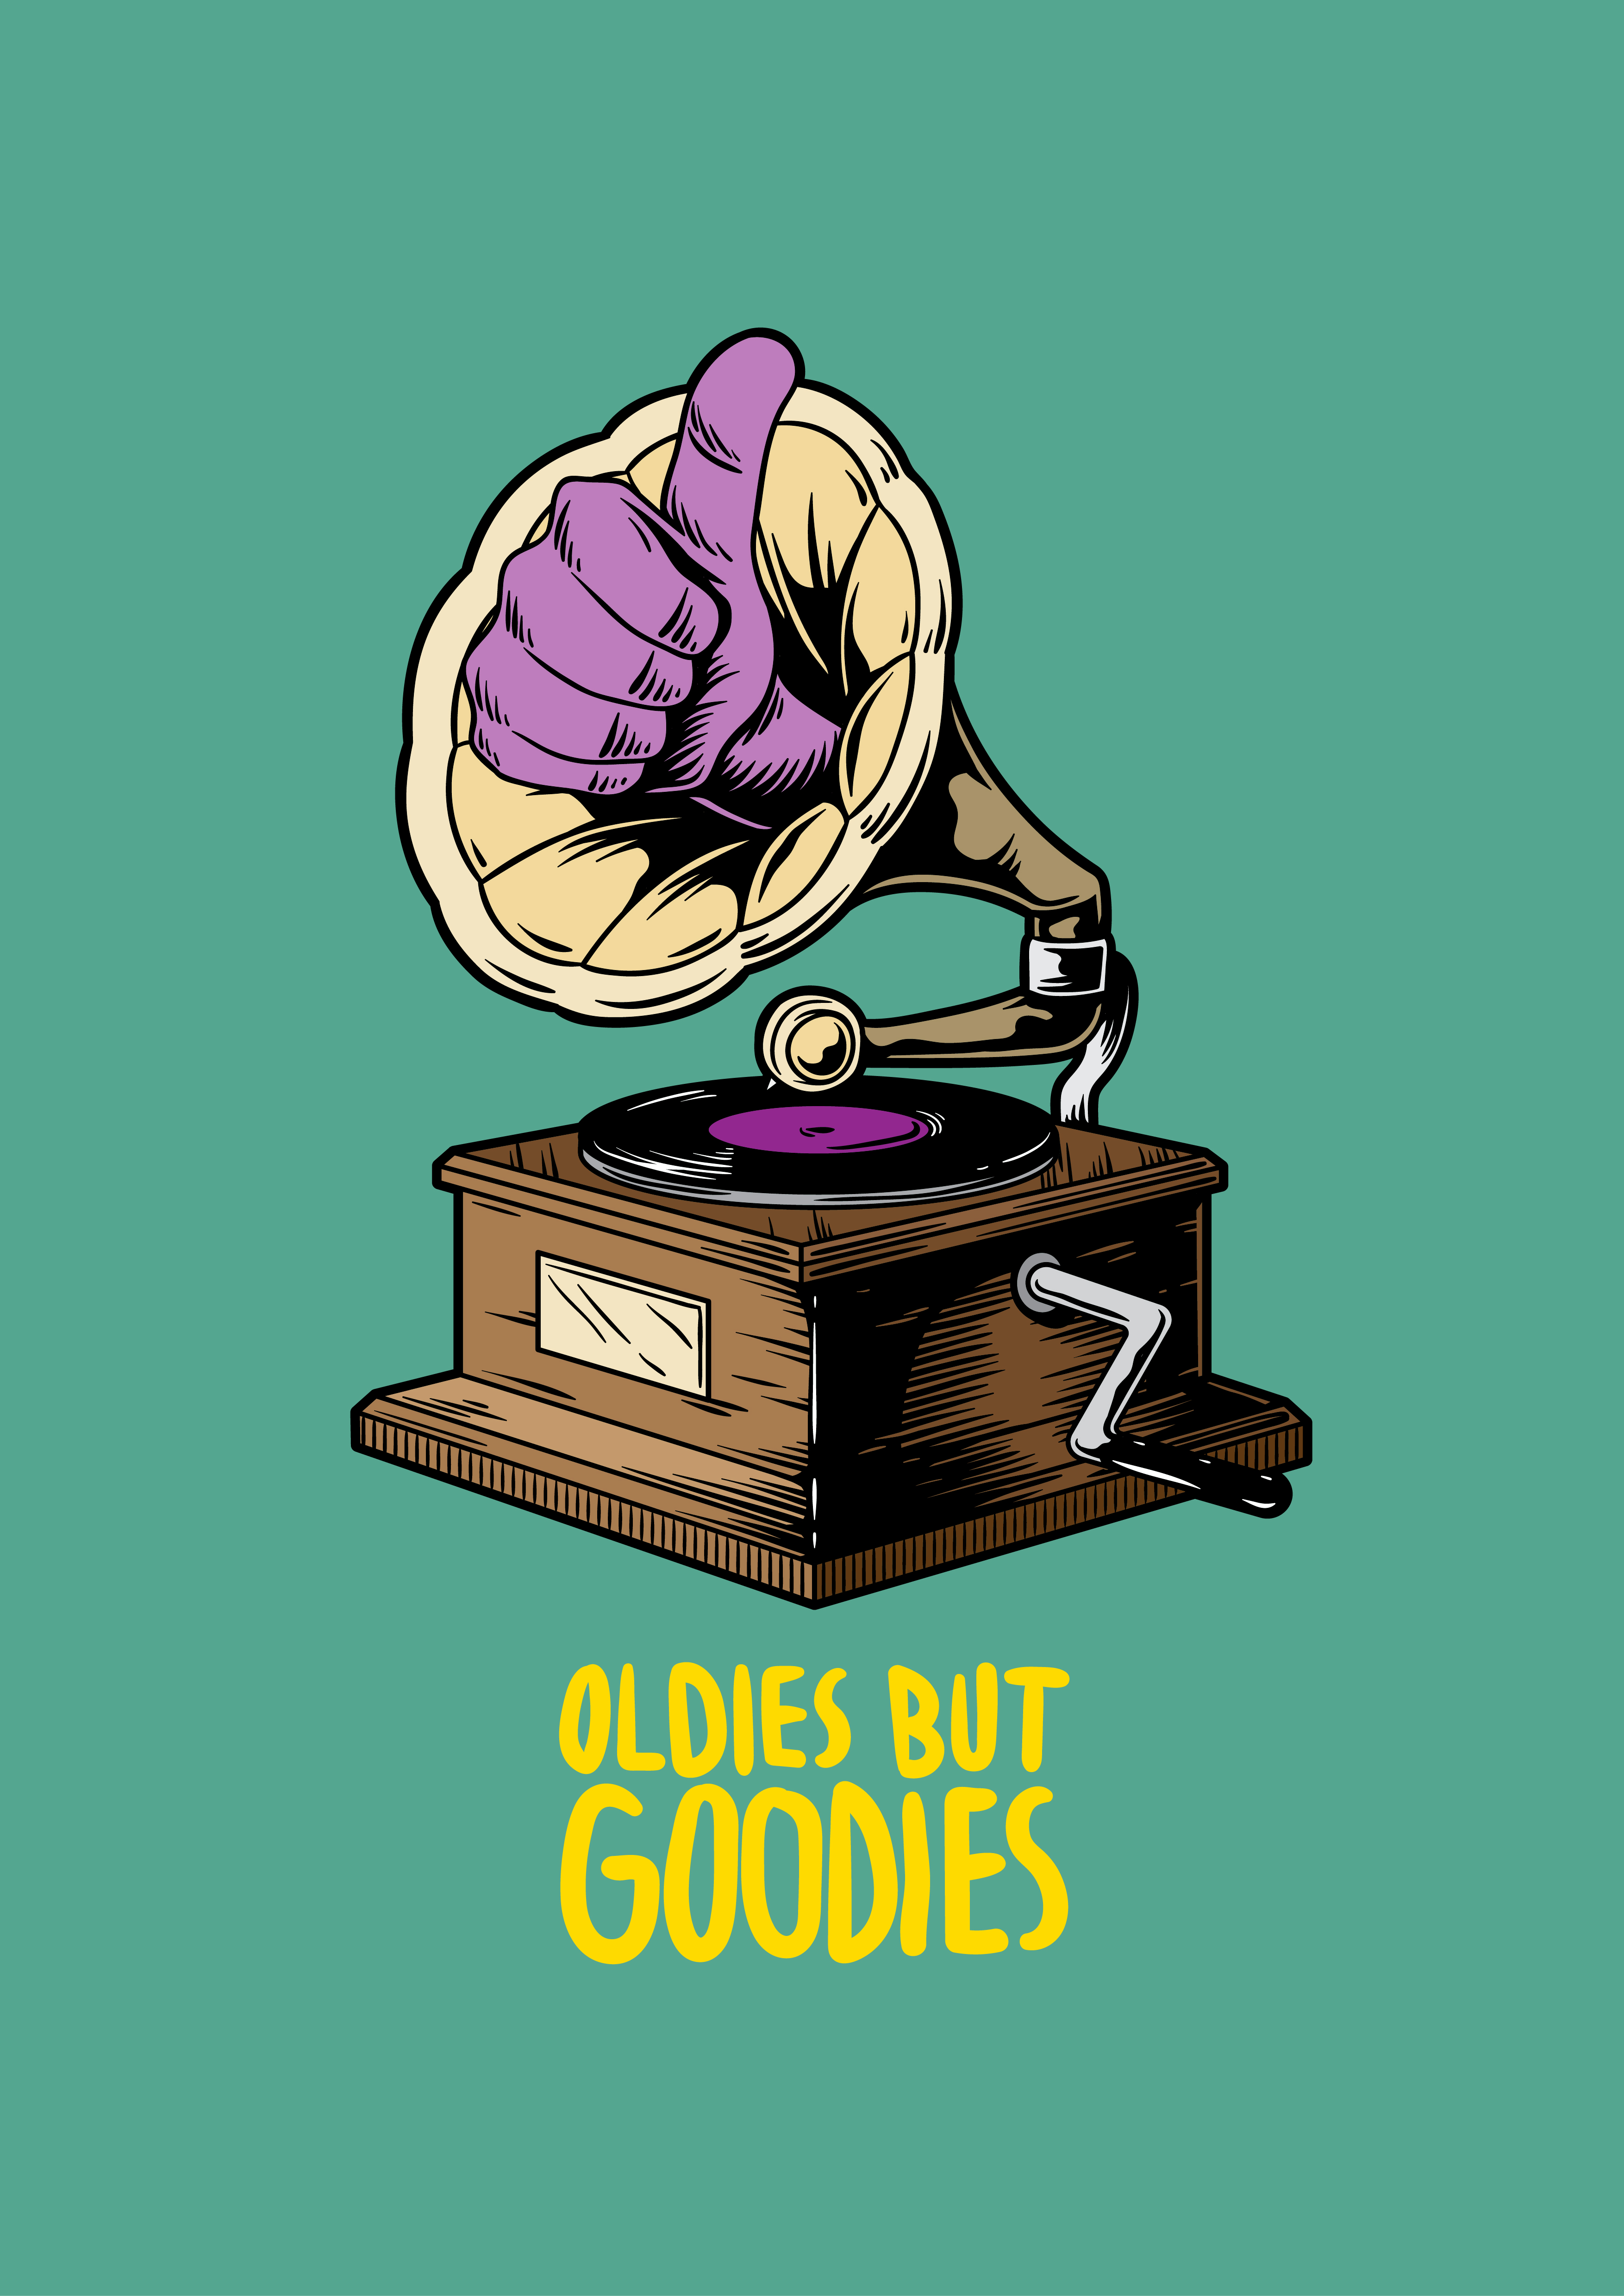 Oldies But Goodies Music Creative Illustration Download